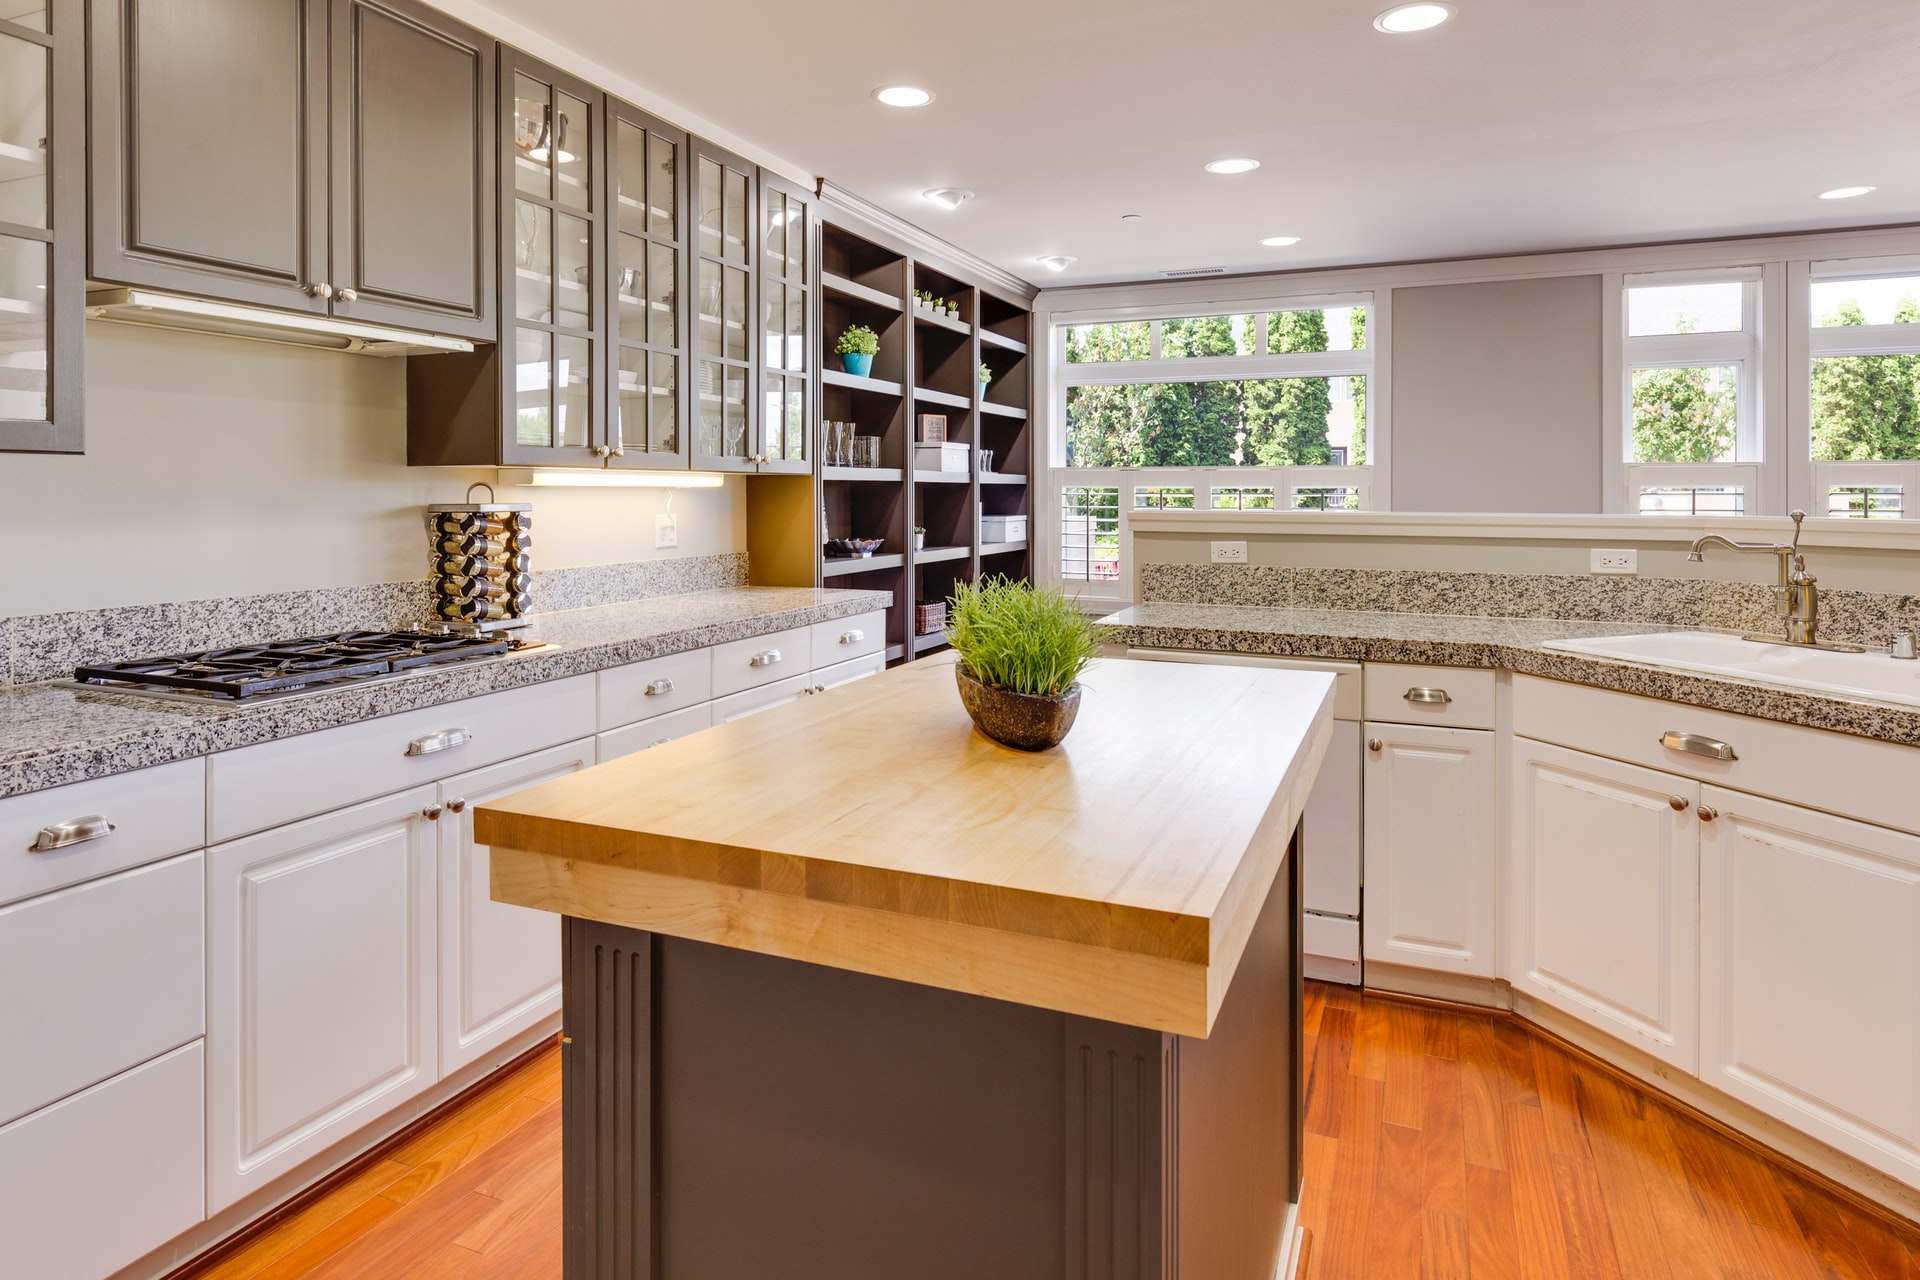 Countertops in Mission Viejo